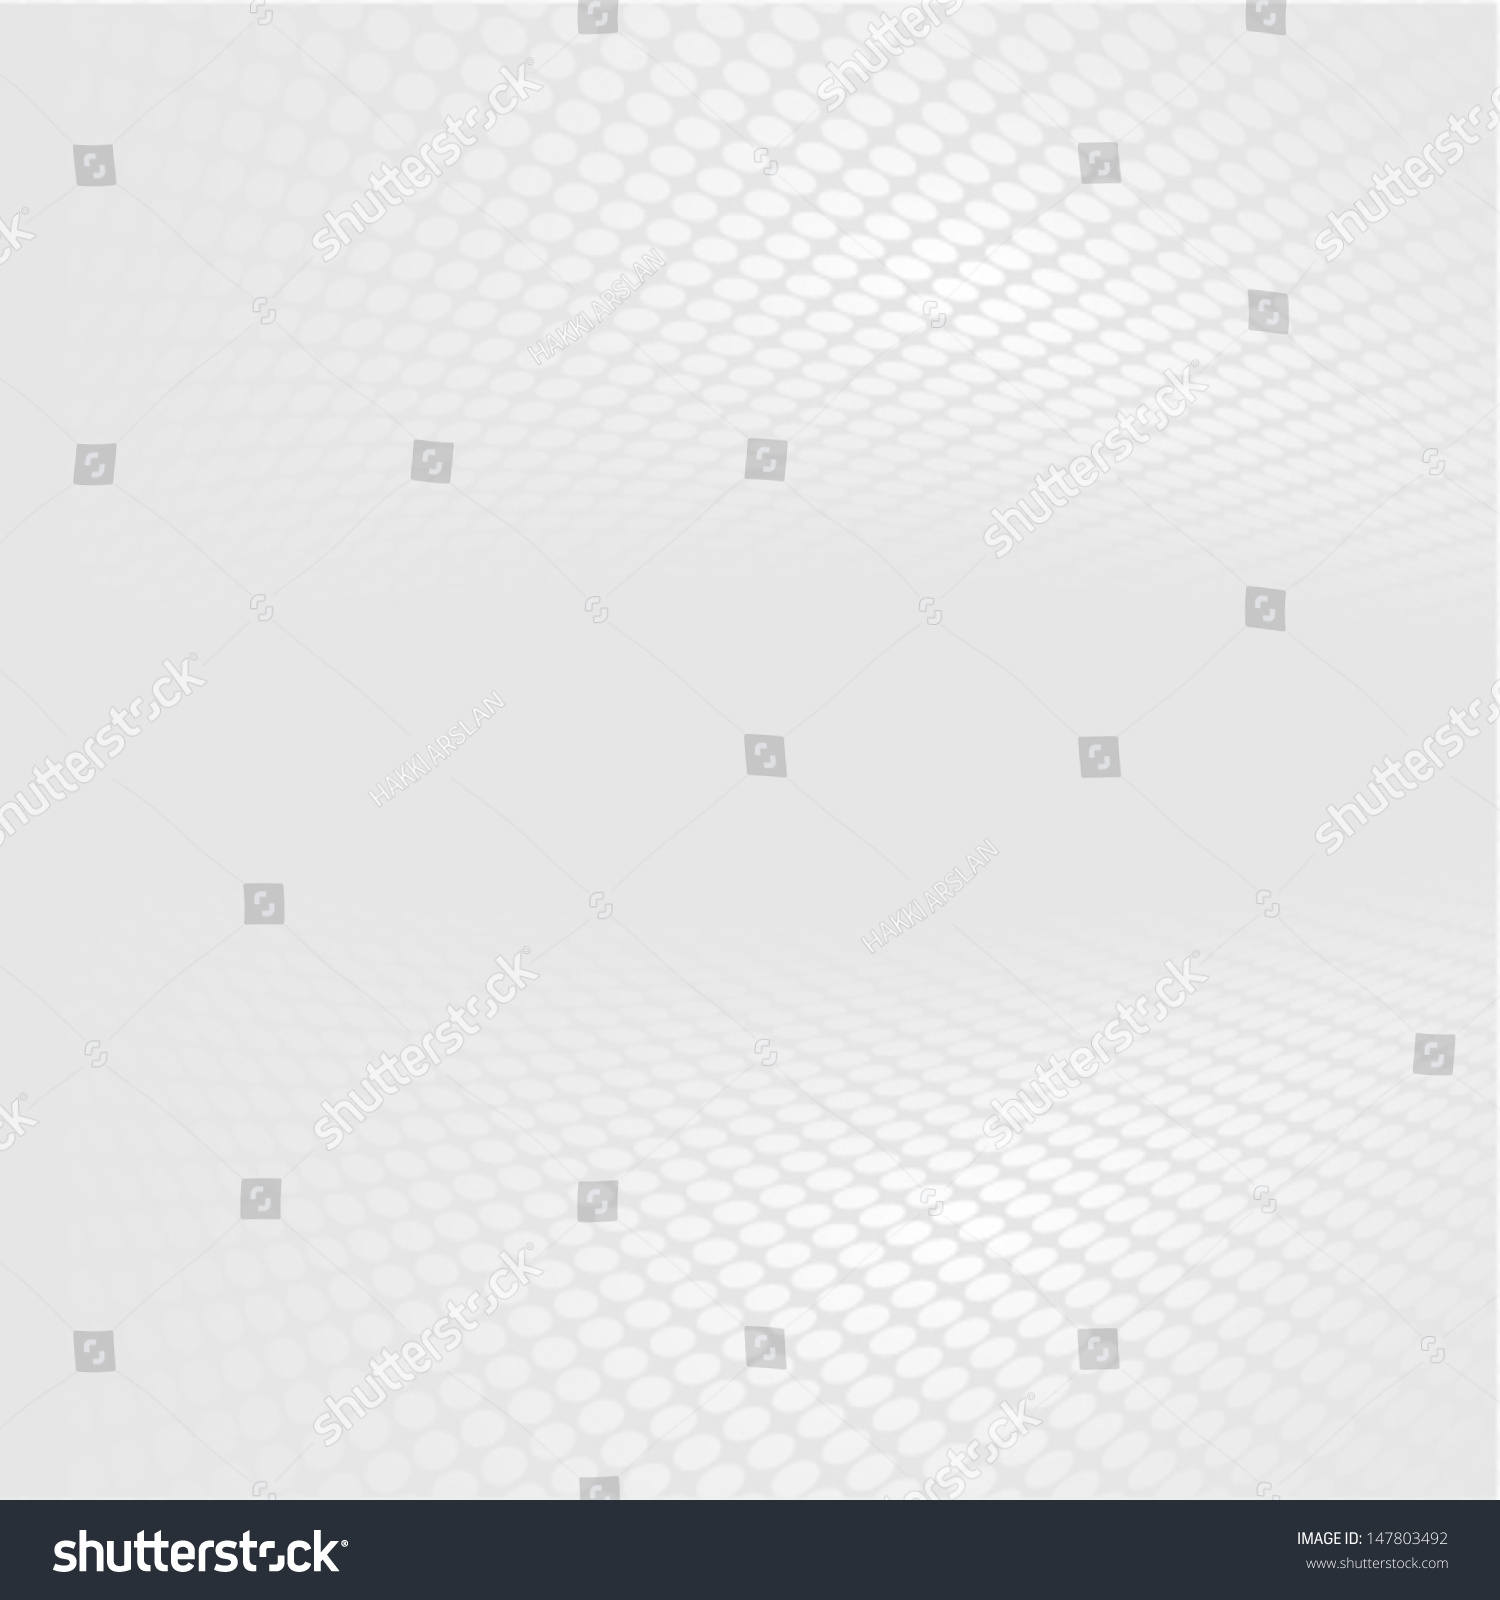 white & grey abstract perspective background #147803492